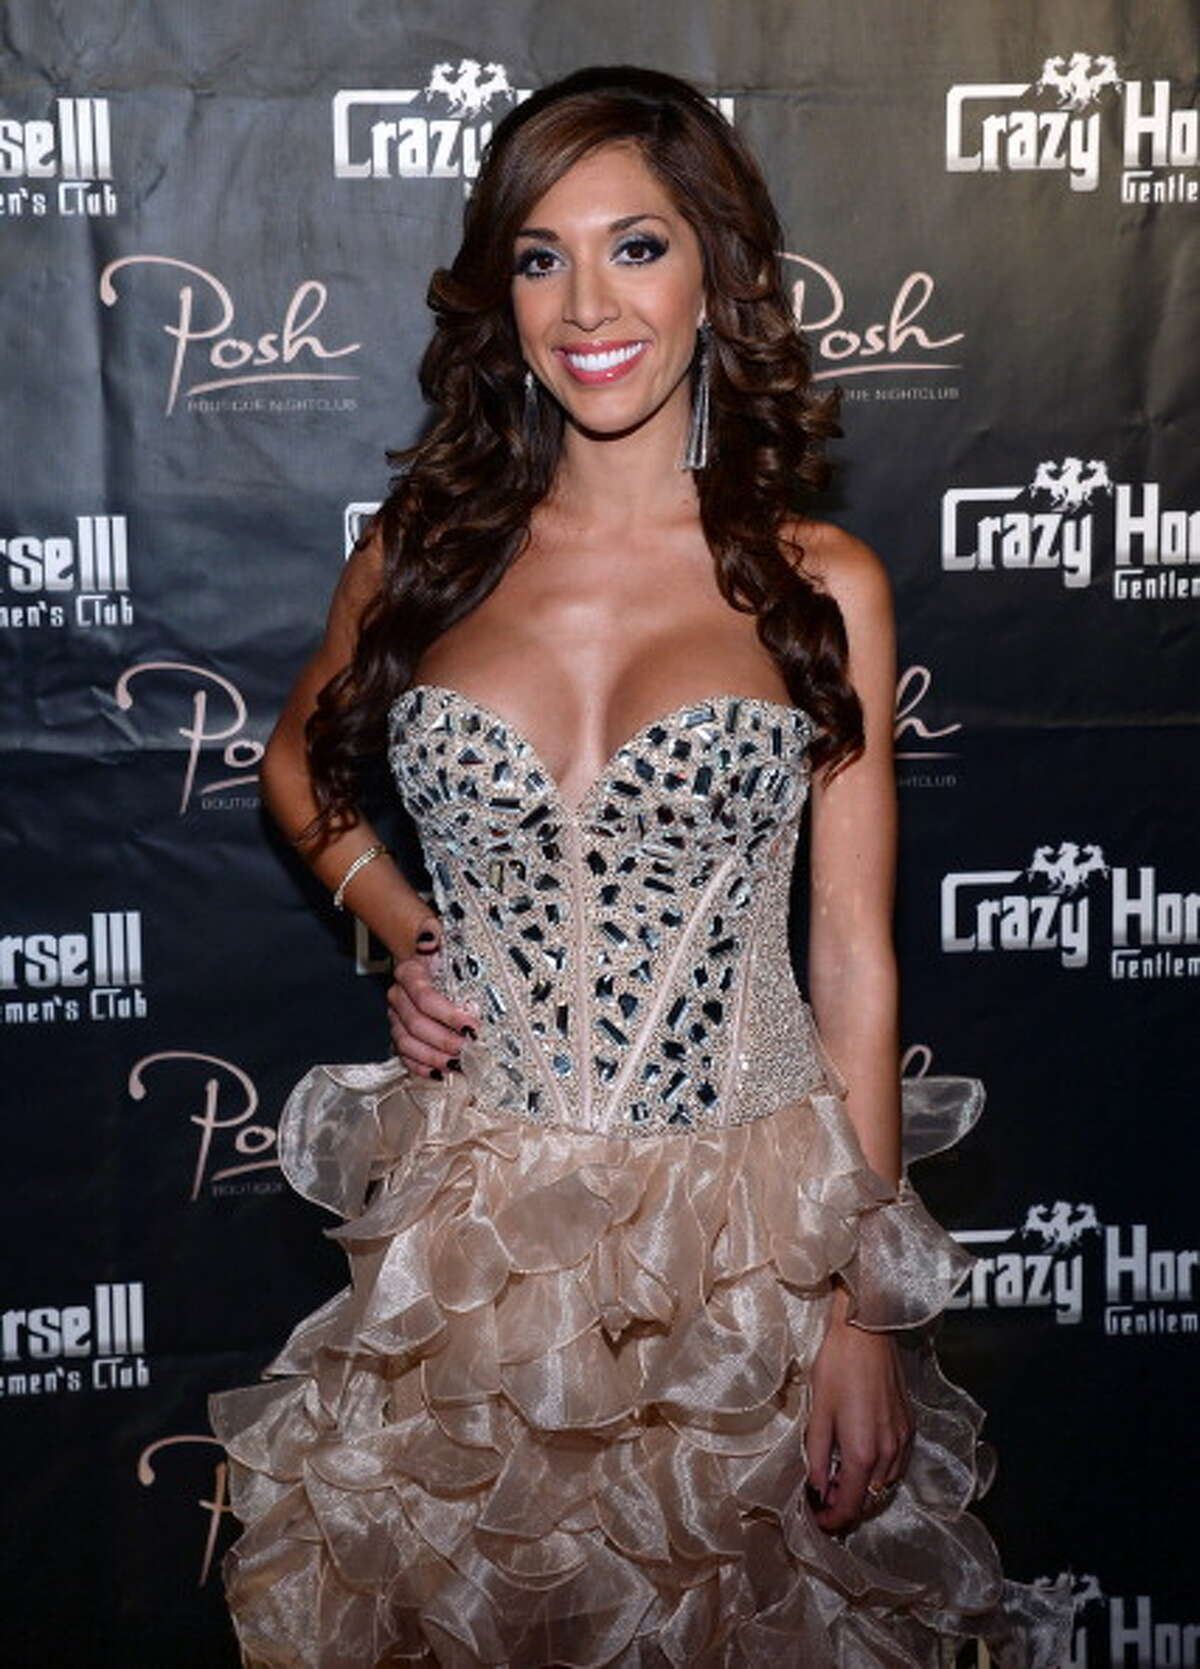 LAS VEGAS, NV - AUGUST 20: Television personality Farrah Abraham arrives at the Crazy Horse III Gentlemen's Club to host the 2013 Gentlemen's Club EXPO & Tradeshow kick off party on August 20, 2013 in Las Vegas, Nevada.